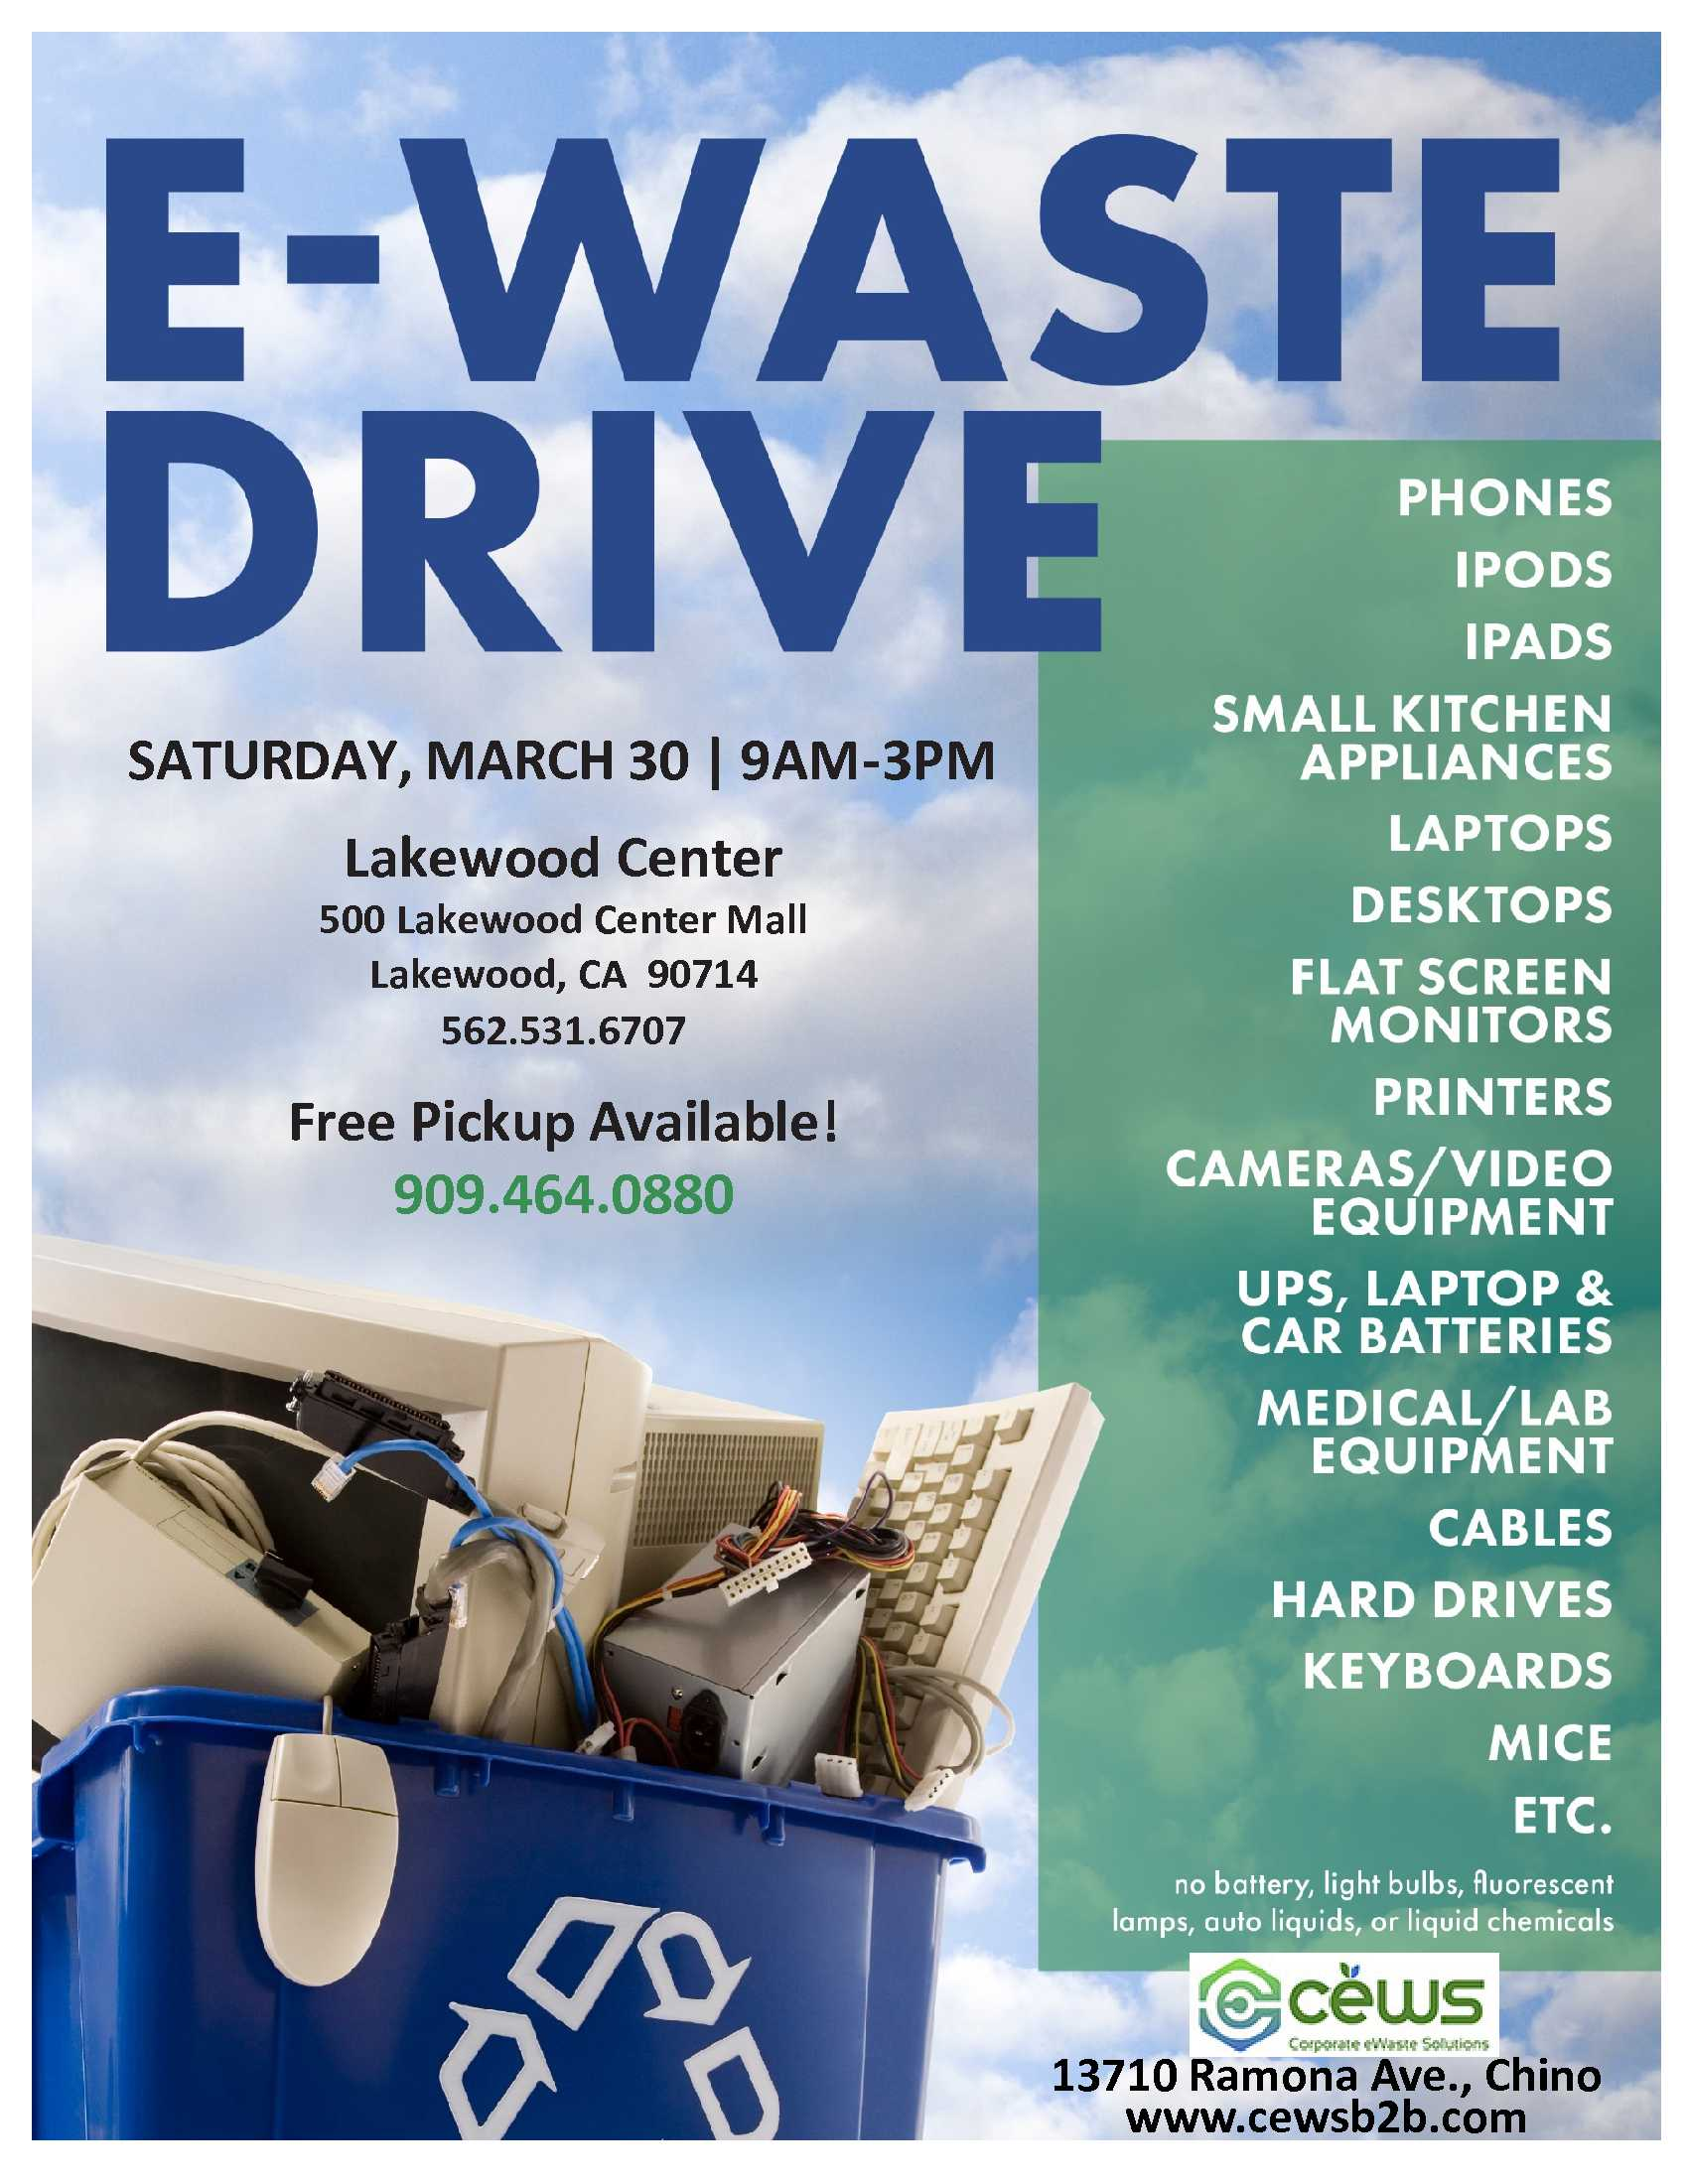 E-Waste Event on March 30, 2019 9am to 3pm at Lakewood Center, 500 Lakewood Center Mall, Lakewood, CA 90713. Free Pickup: 909.464.0880  Contact: www.cewsb2b.com